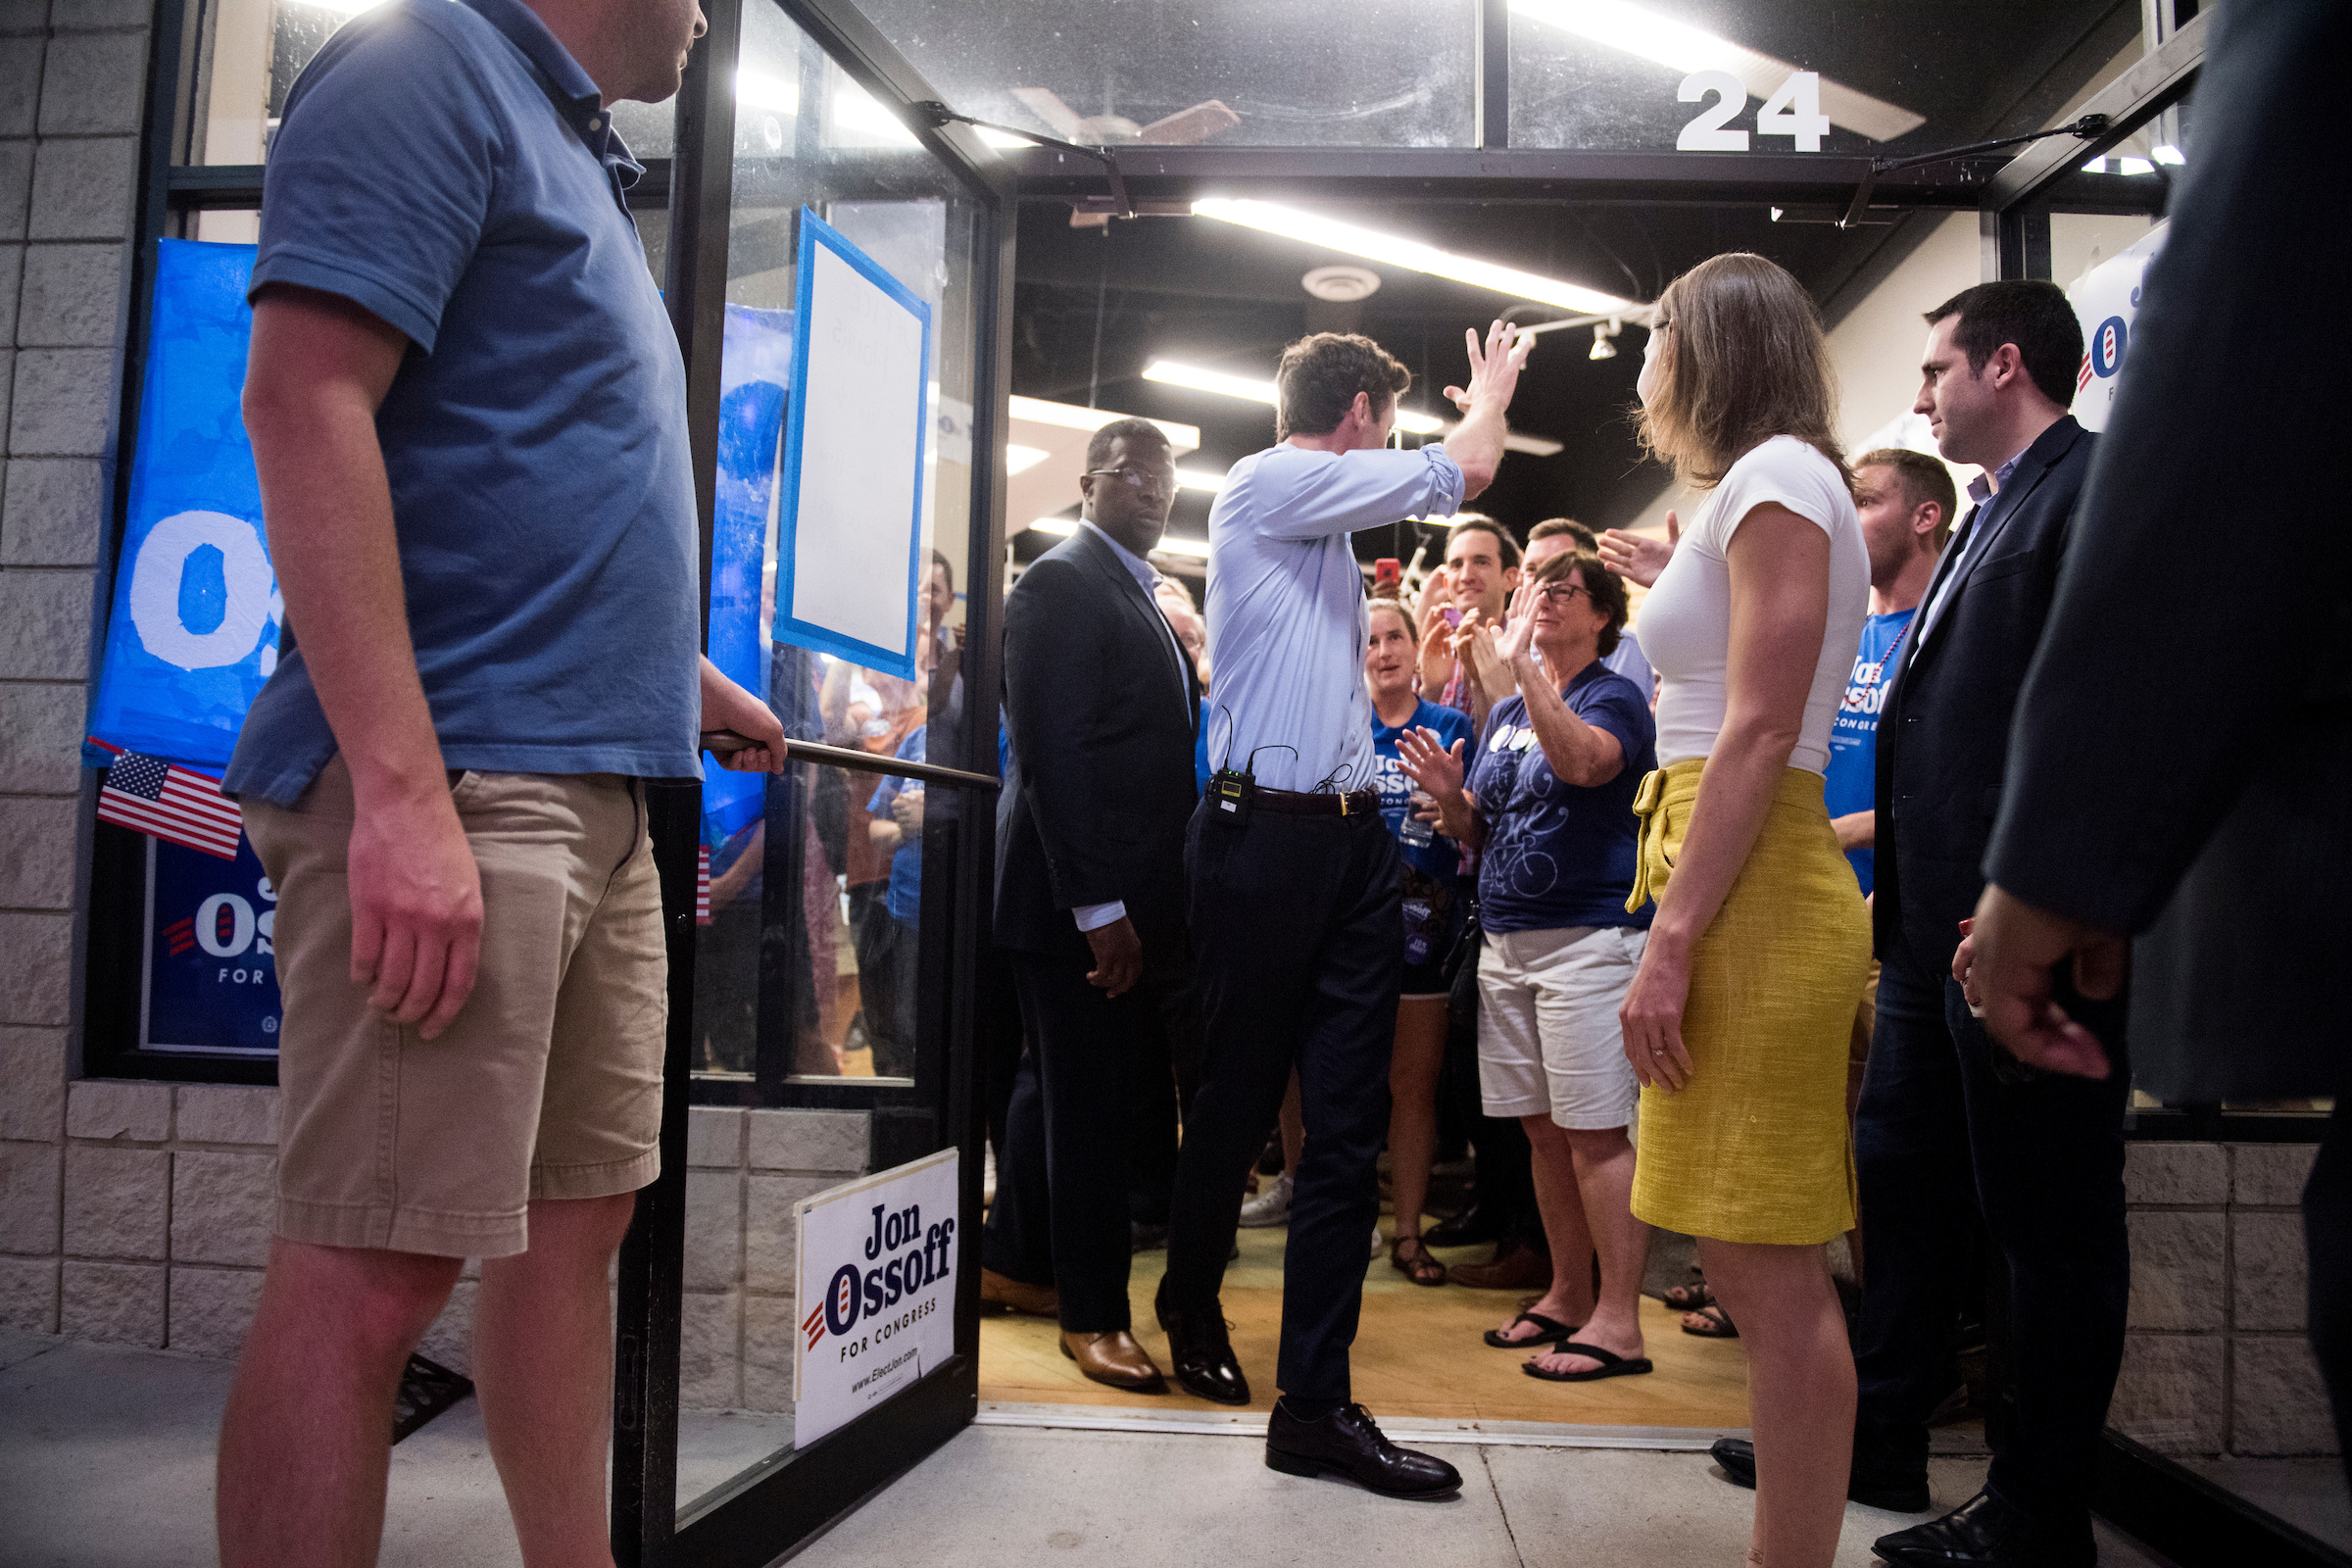 Ossoff waves to supporters as he and his his fiancee Alisha Kramer leave his final campaign rally at his campaign office in Roswell, Ga., on the final day of campaigning on Monday. (Bill Clark/CQ Roll Call)